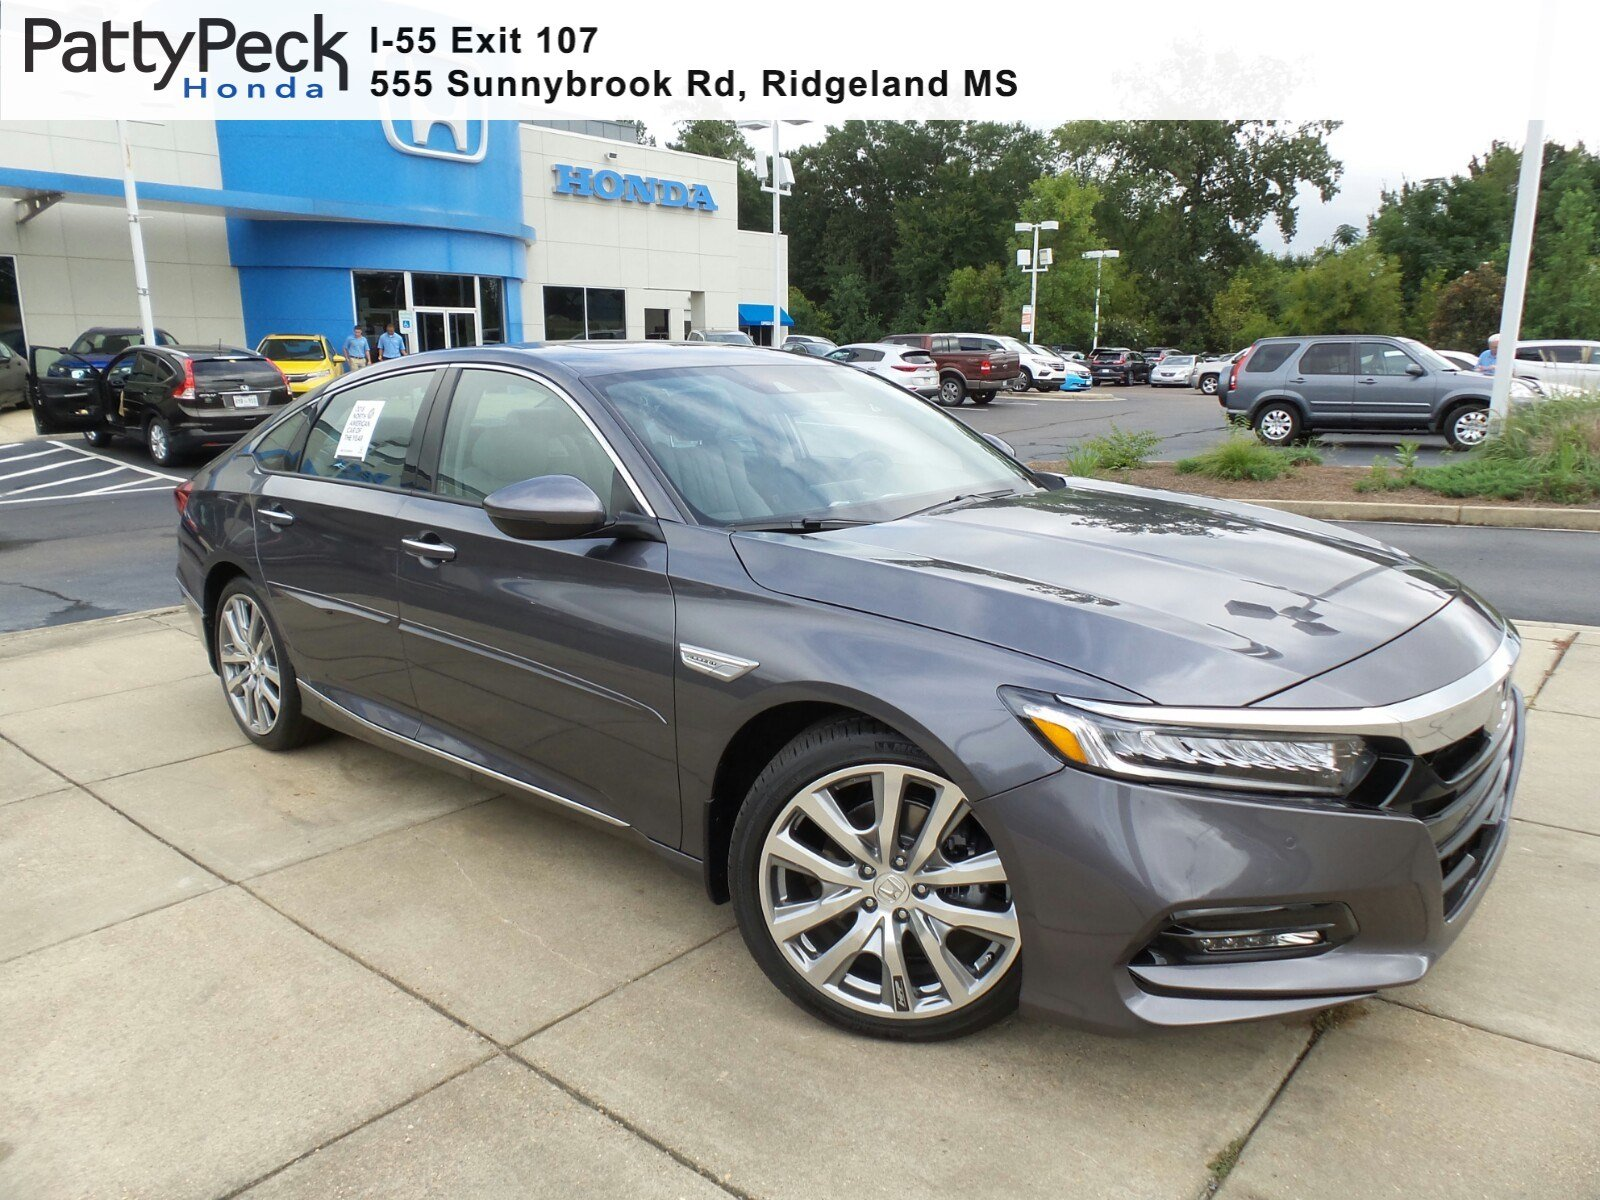 New 2018 Honda Accord Sedan Touring 1.5T FWD 4dr Car